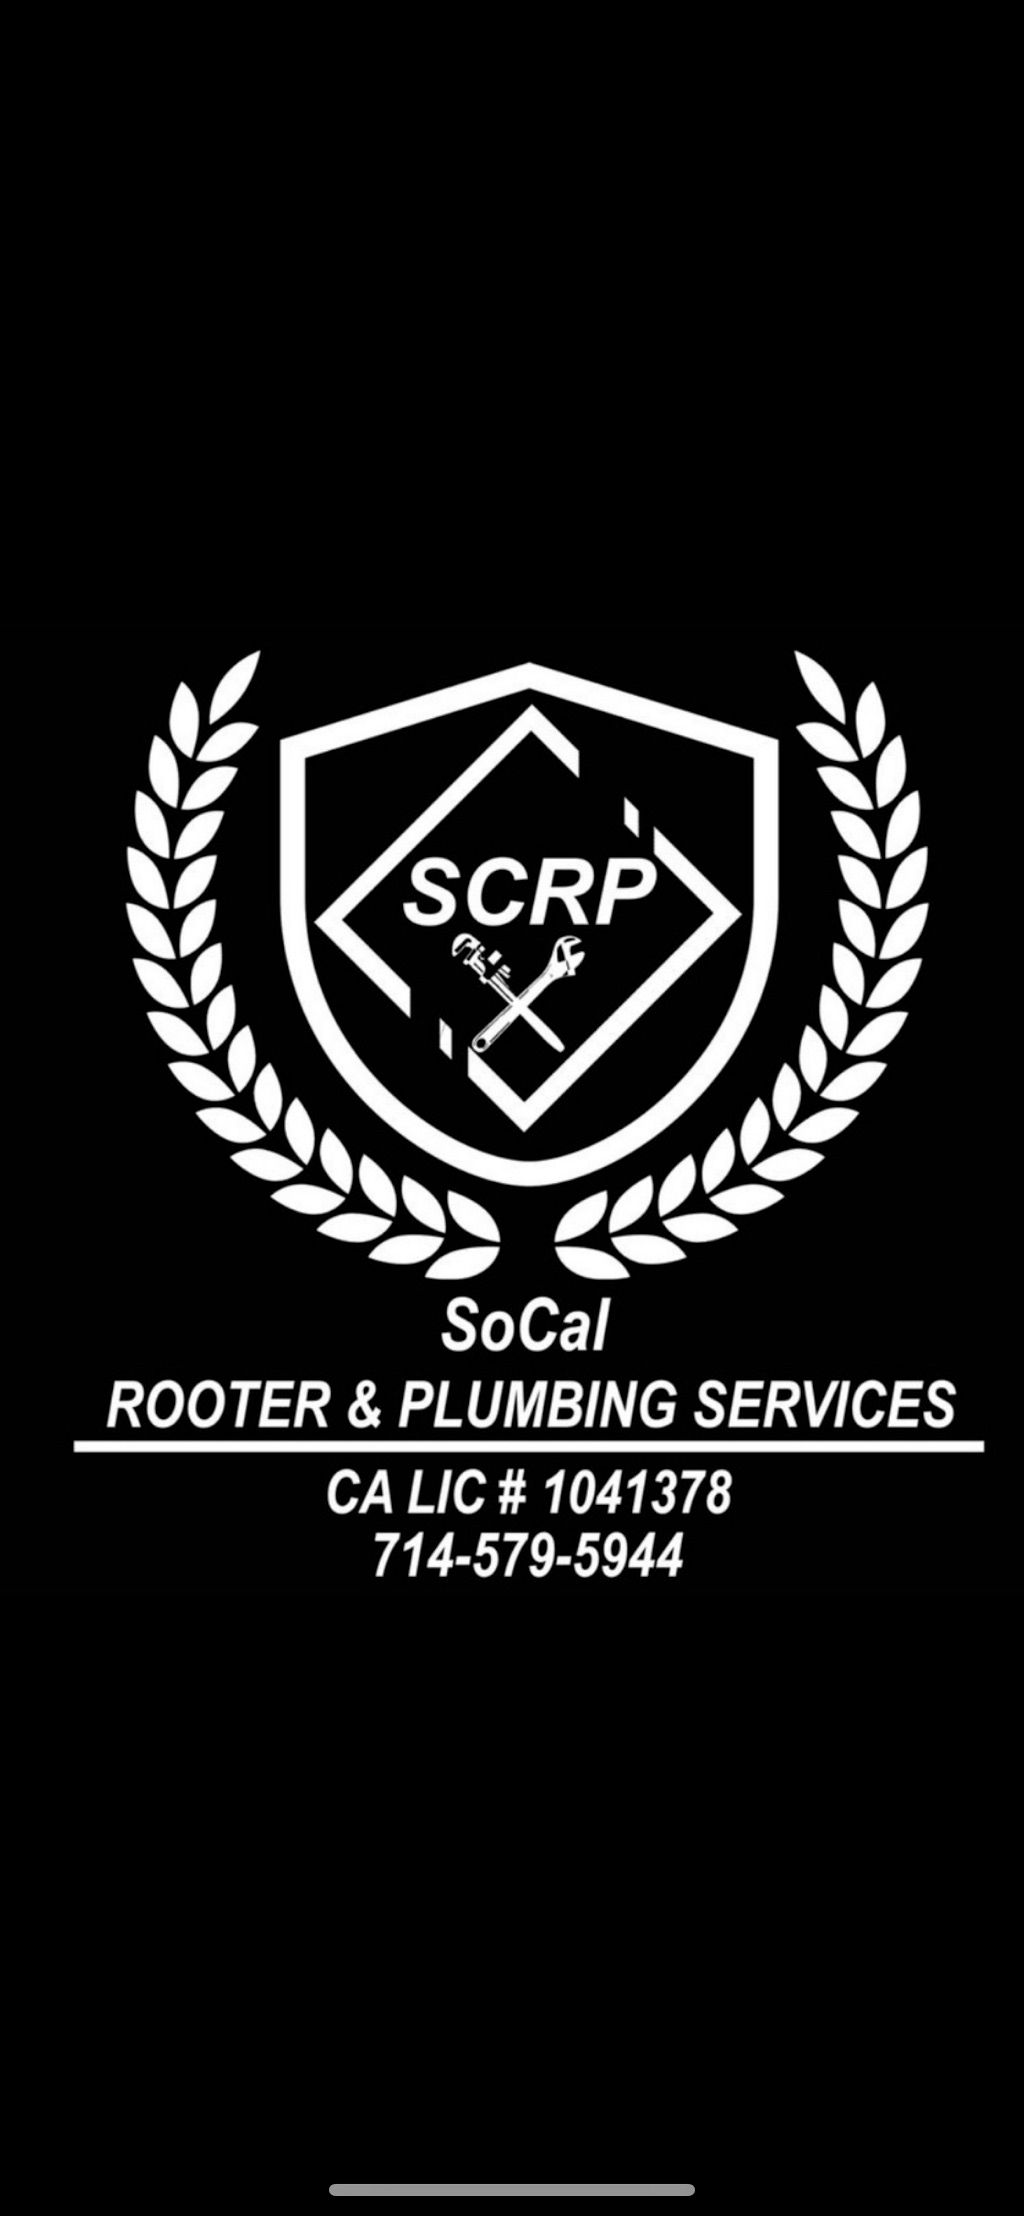 SoCal Rooter & Plumbing Services